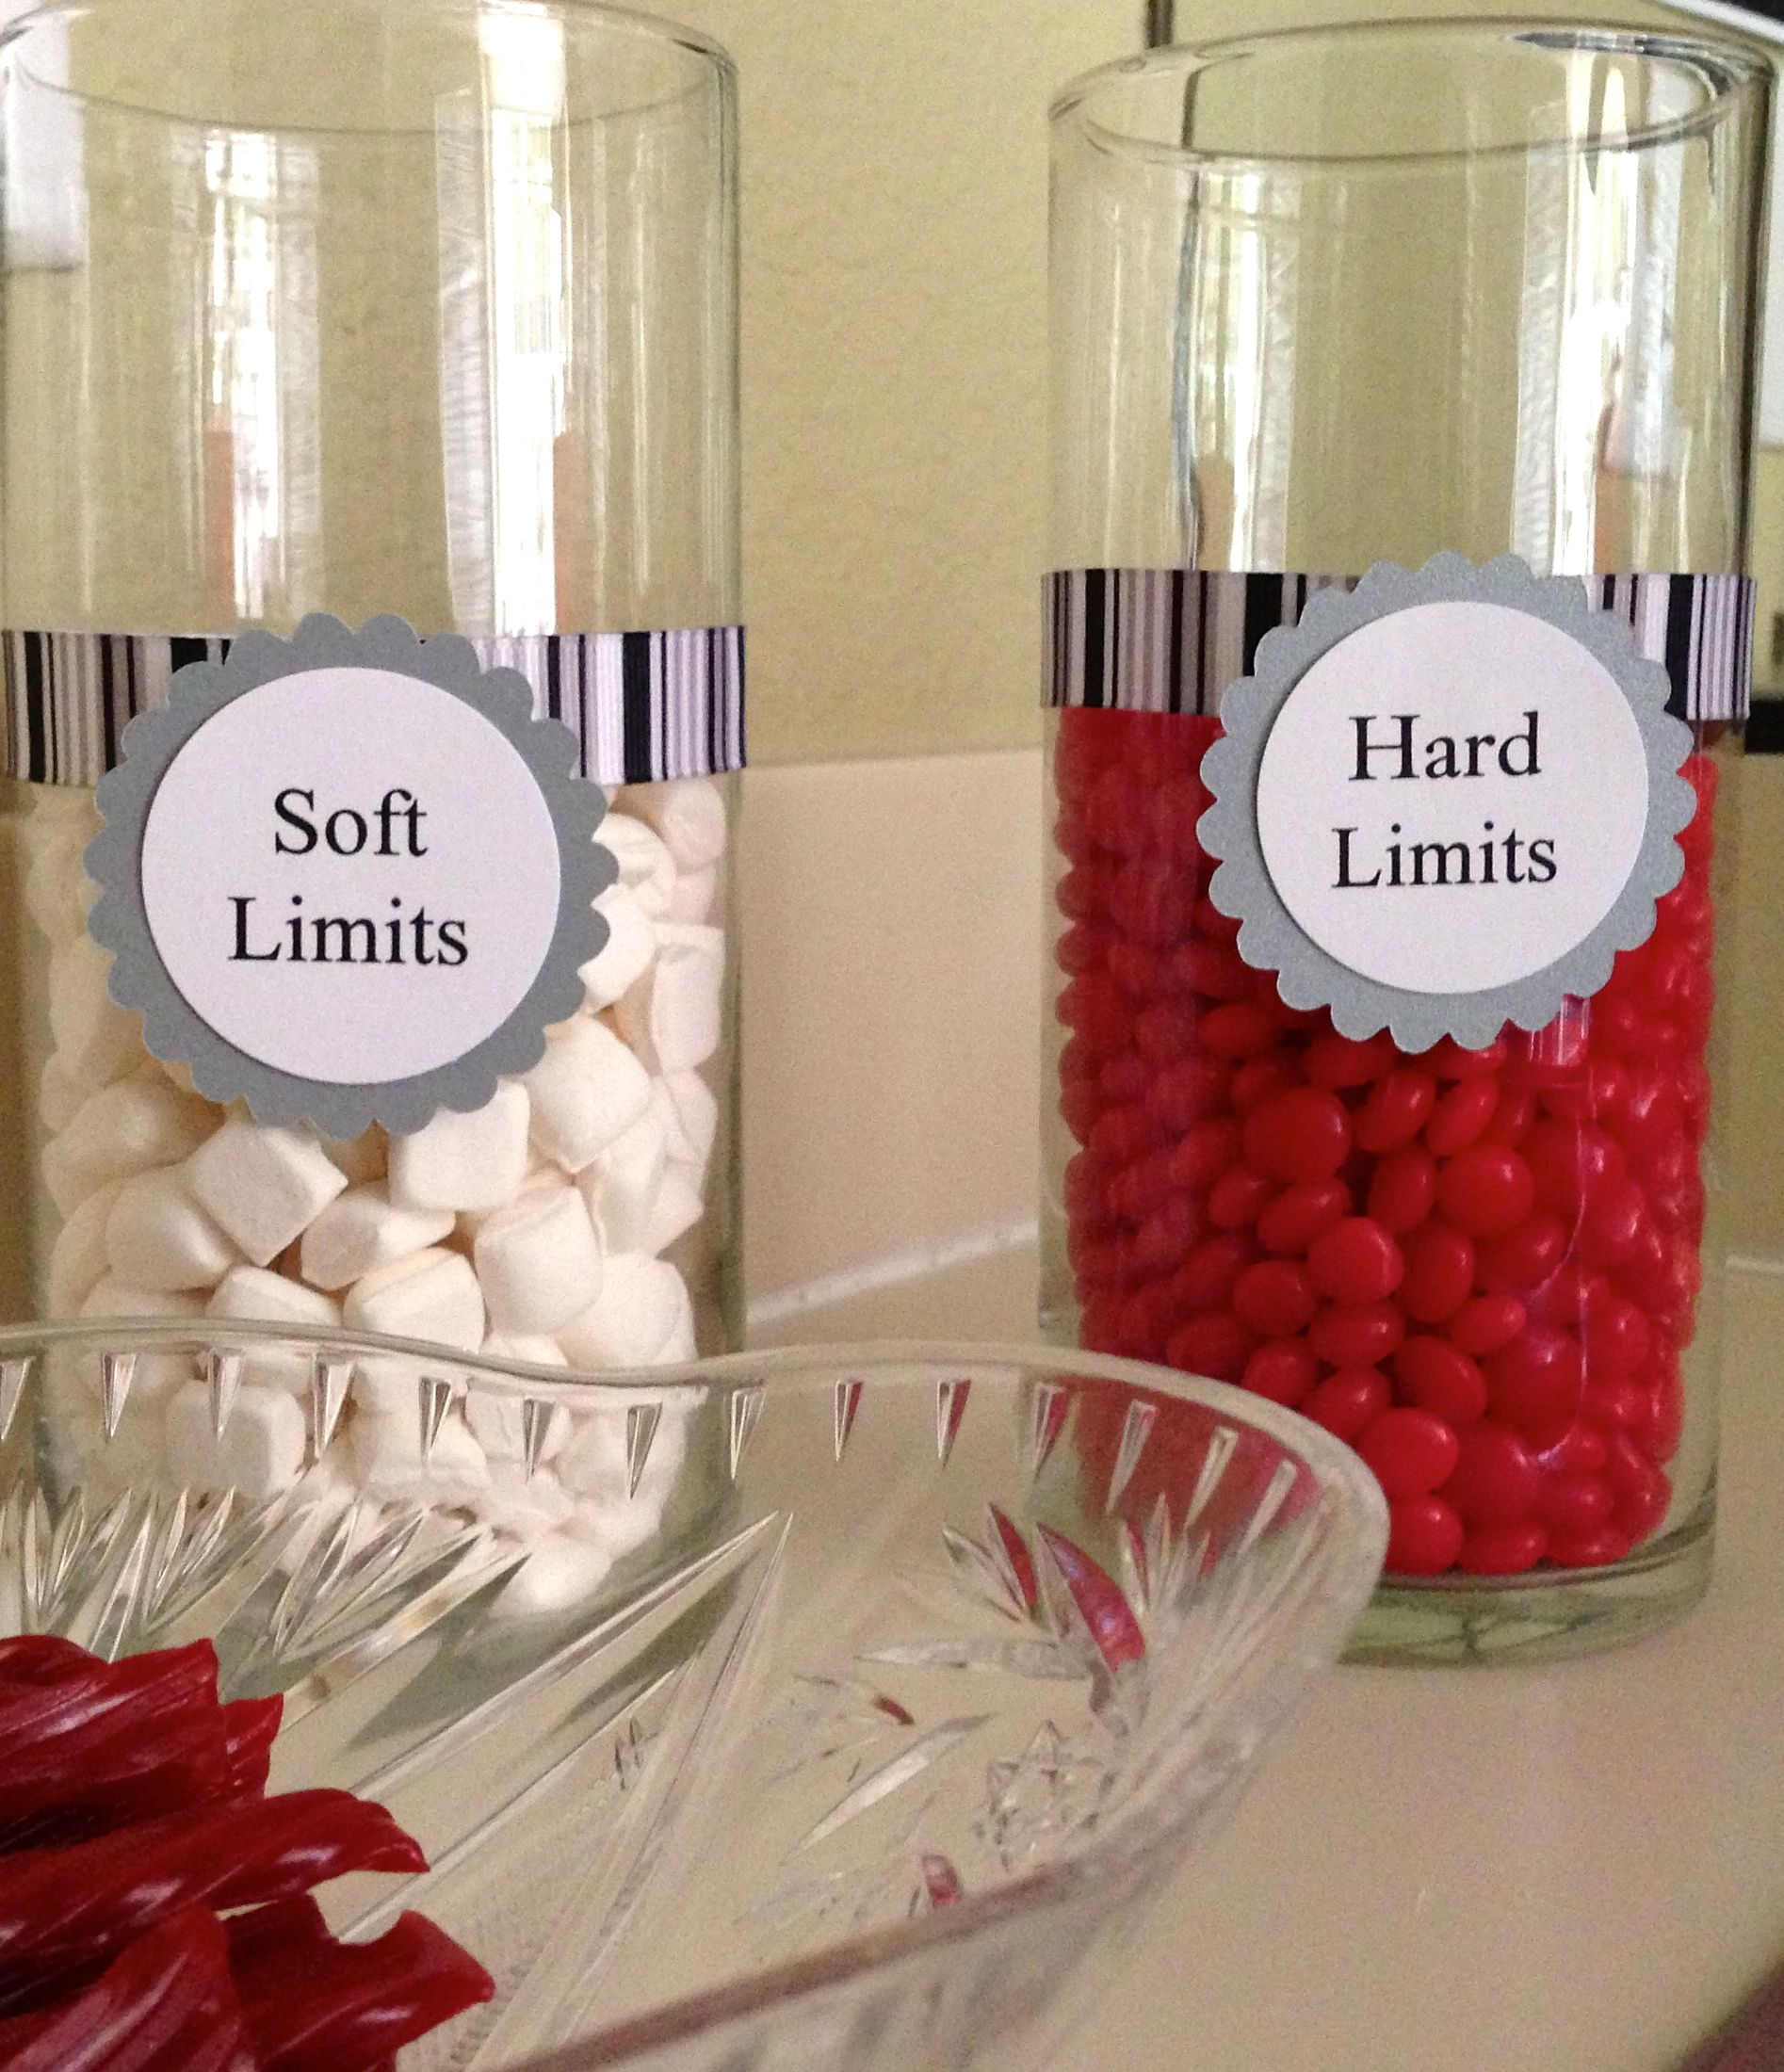 Perfect Labels For A Candy Buffet At A Fifty Shades Of Grey Party Fifty Shades Of Grey Pa 50 Shades Party 50 Shades Bachelorette Party Fifty Shades Party Ideas